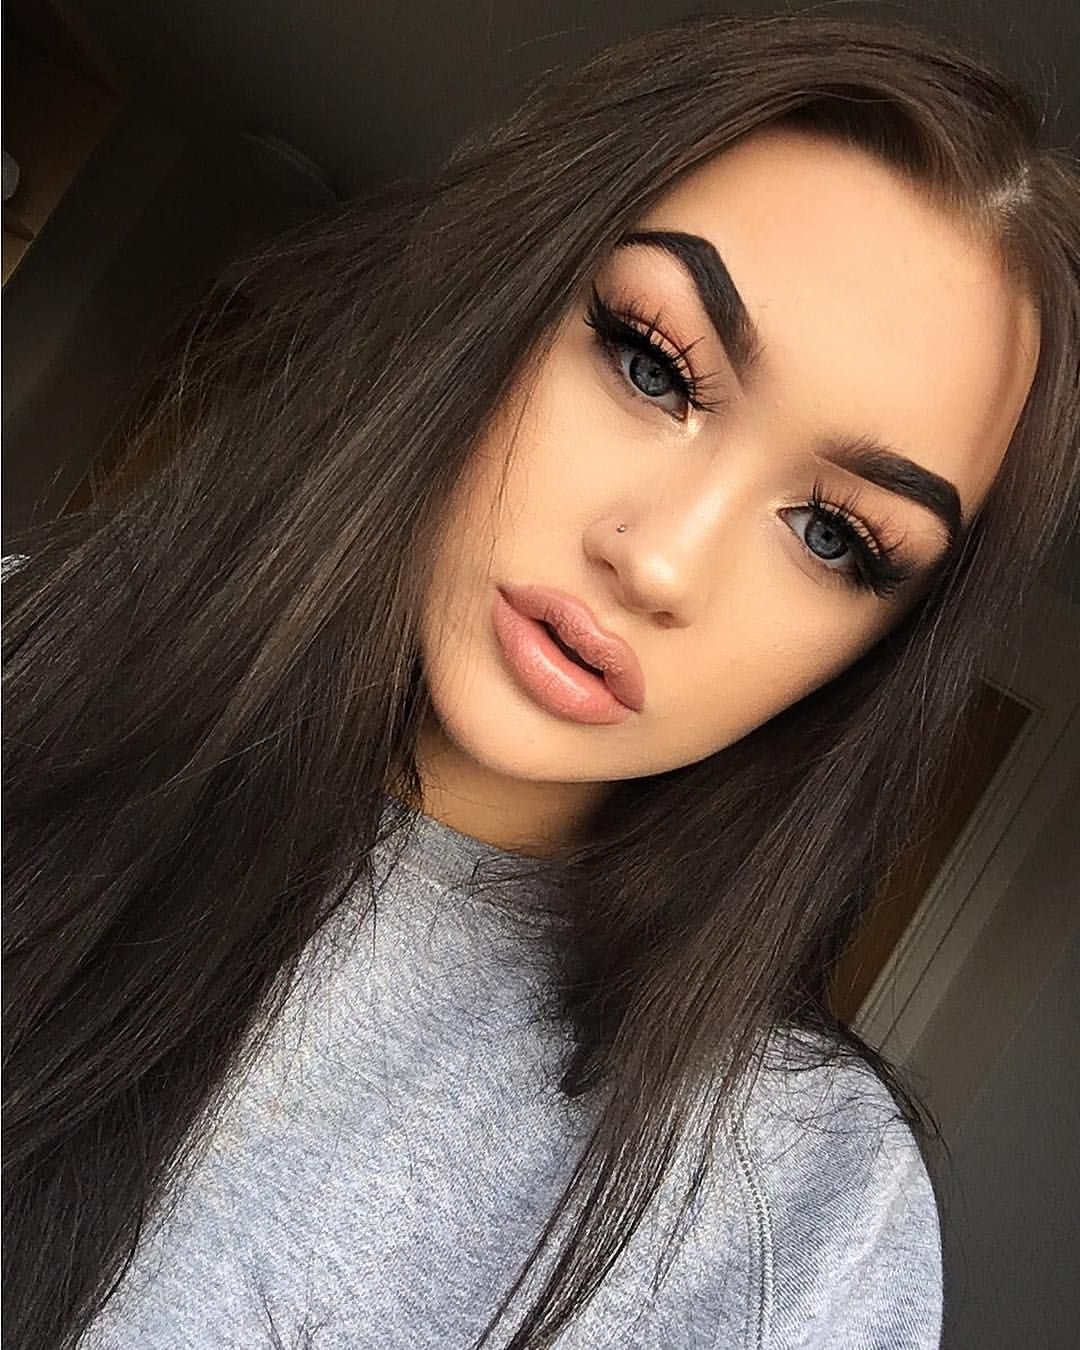 Sparkle shine glitter hair and makeup feathers shimmer - 23 9k Likes 181 Comments Meg Feather Megfeather On Instagram